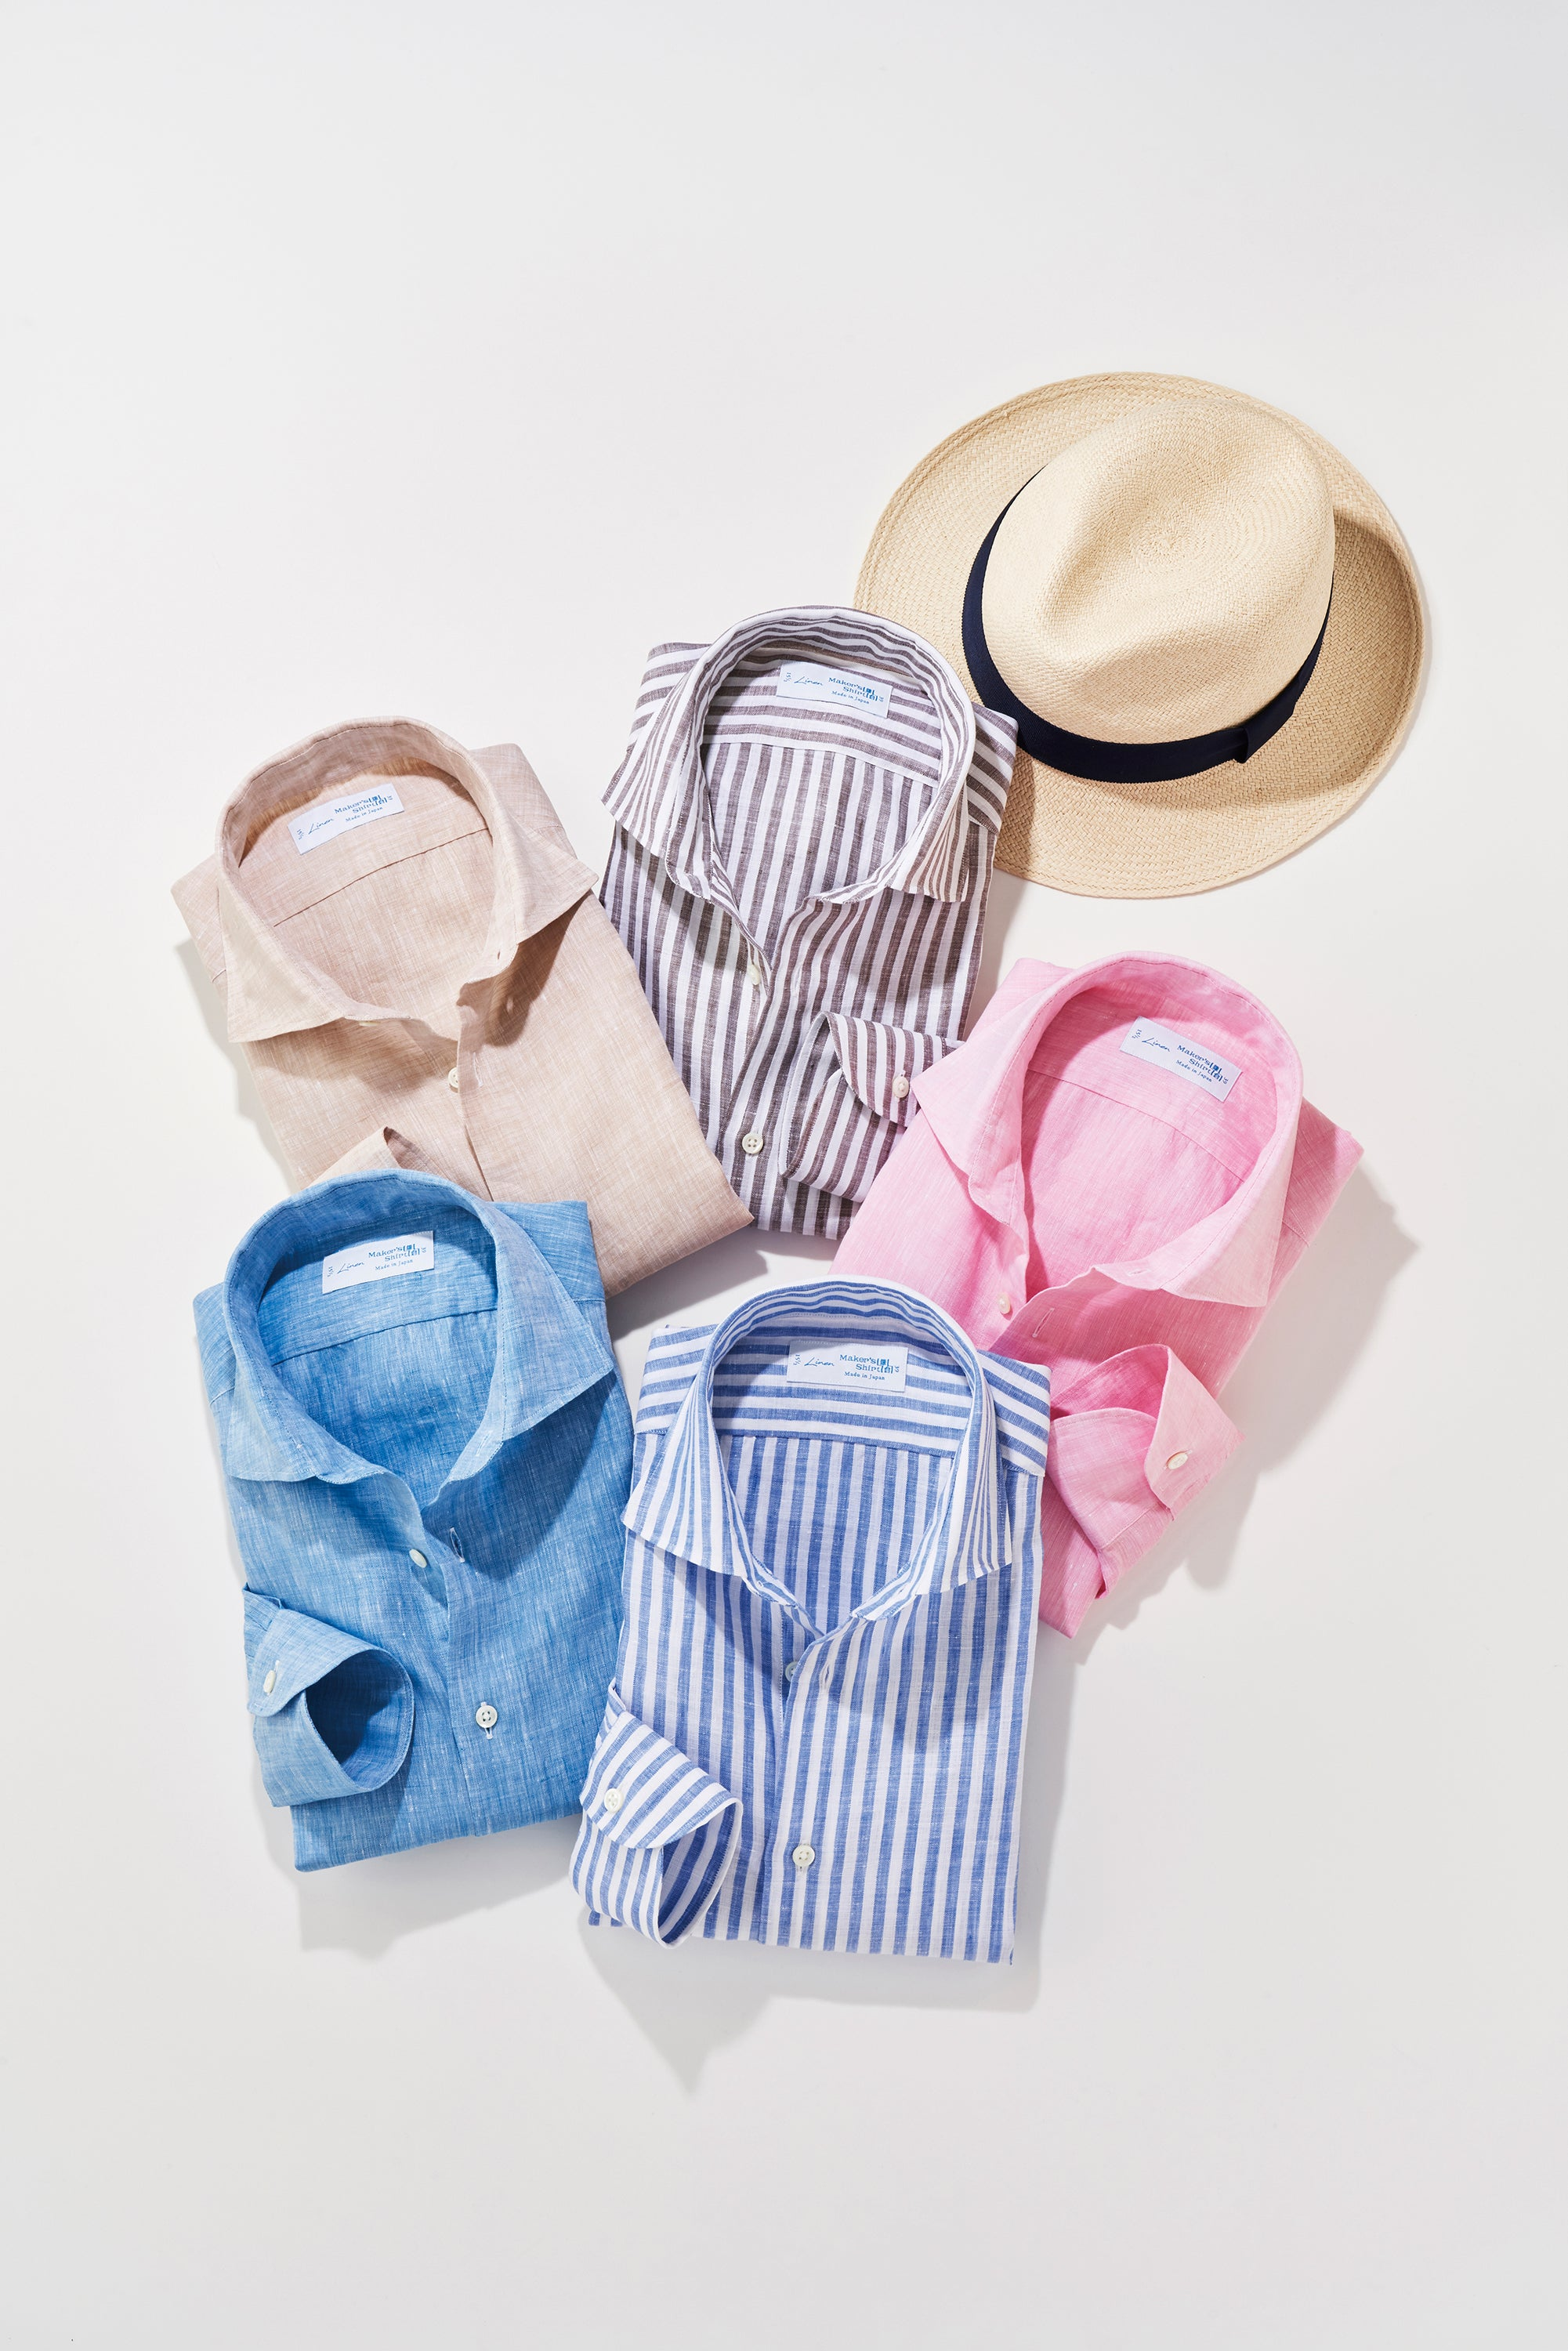 A pile of folded colorful linen shirts and a straw hat